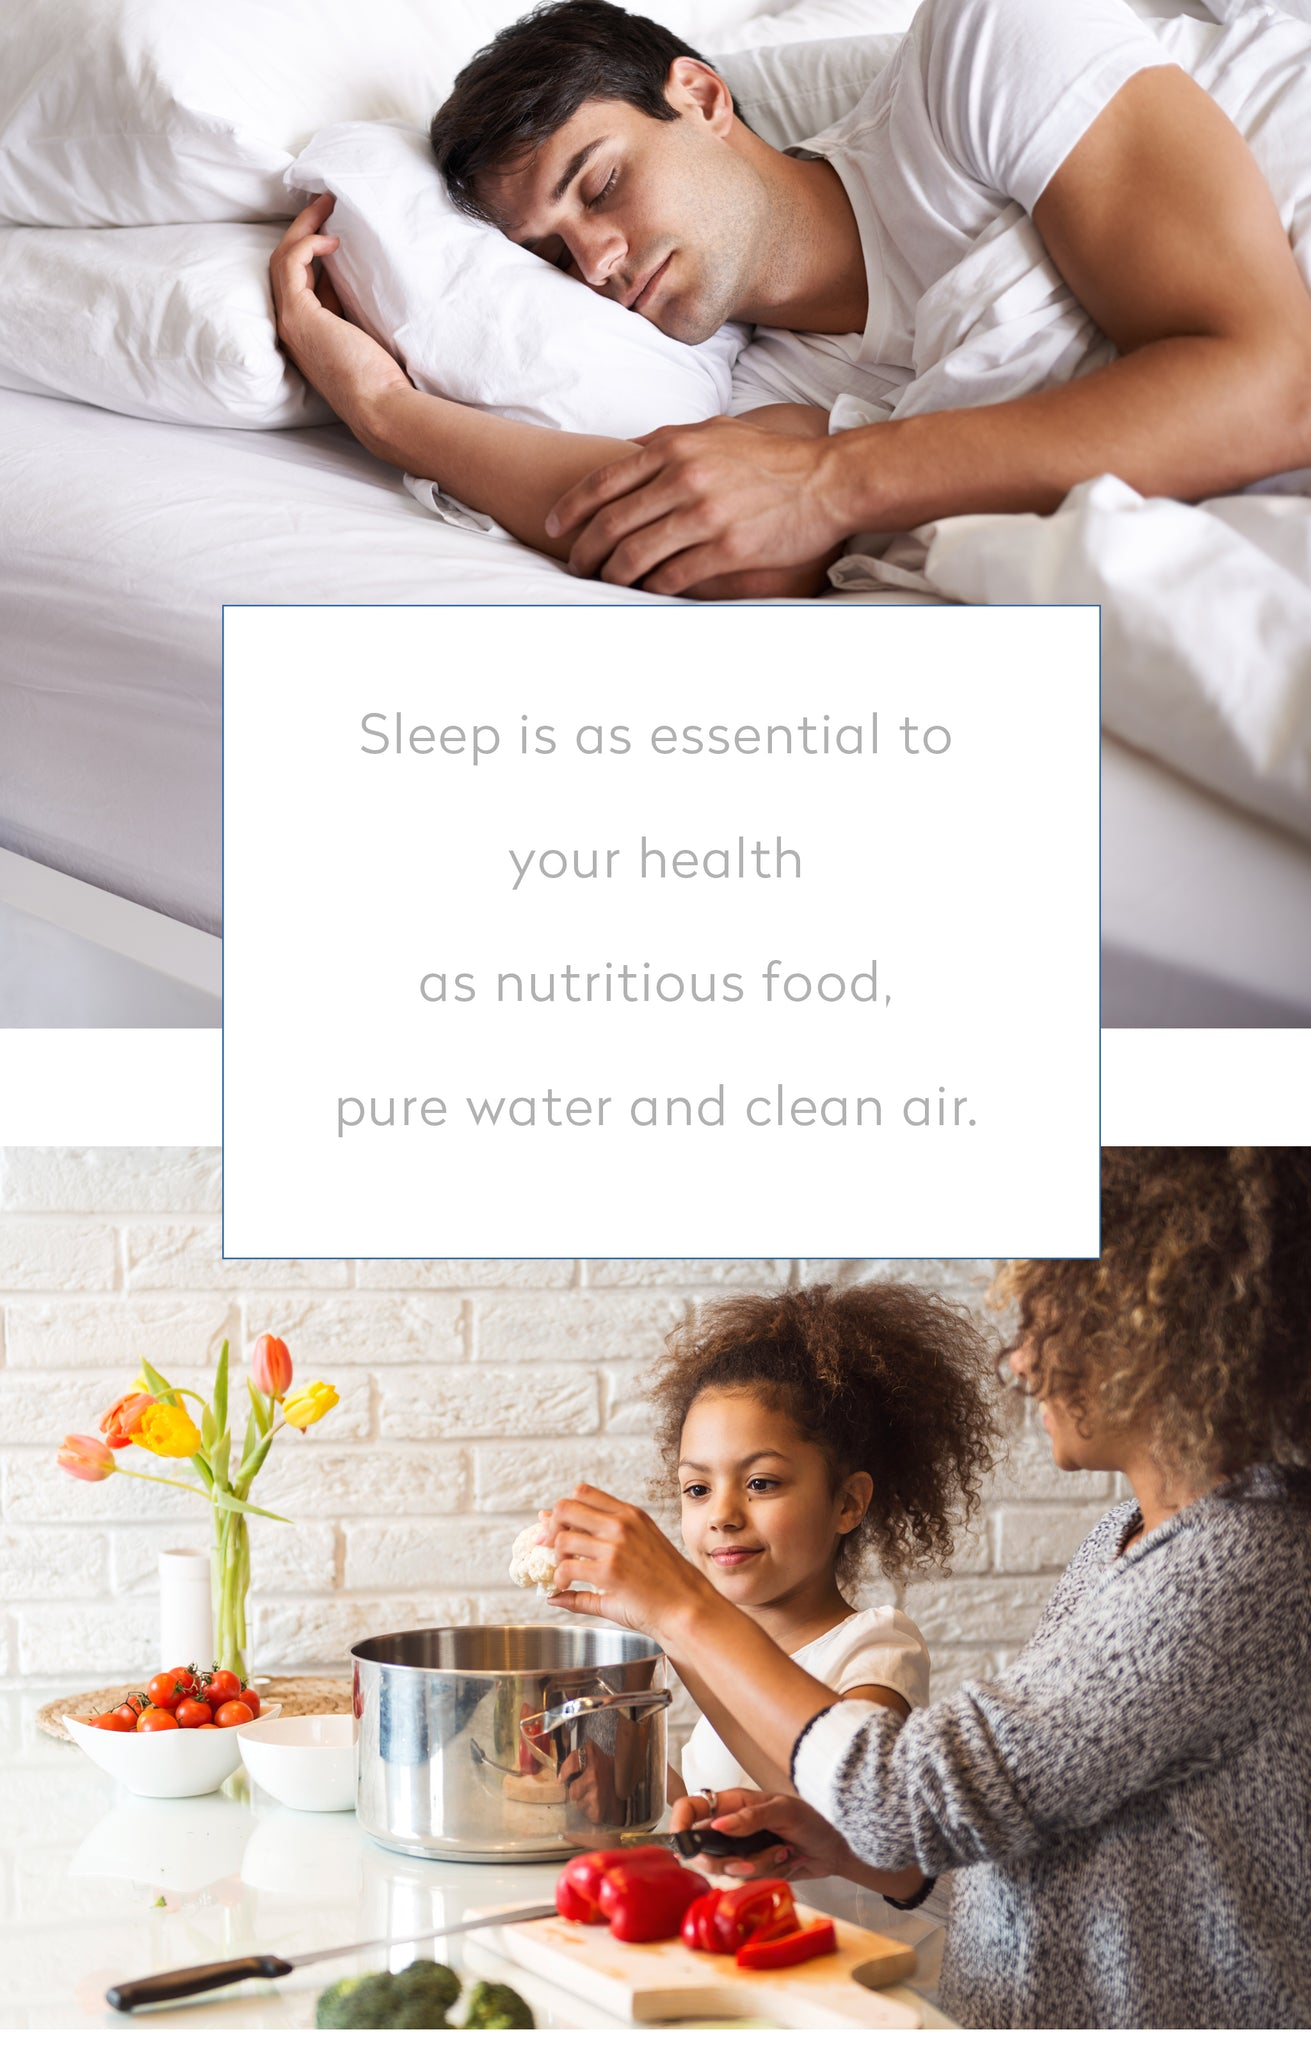 man sleeping, woman and child cooking - caption - sleep is as essential to your health as nutritious food, pure water and clean air.